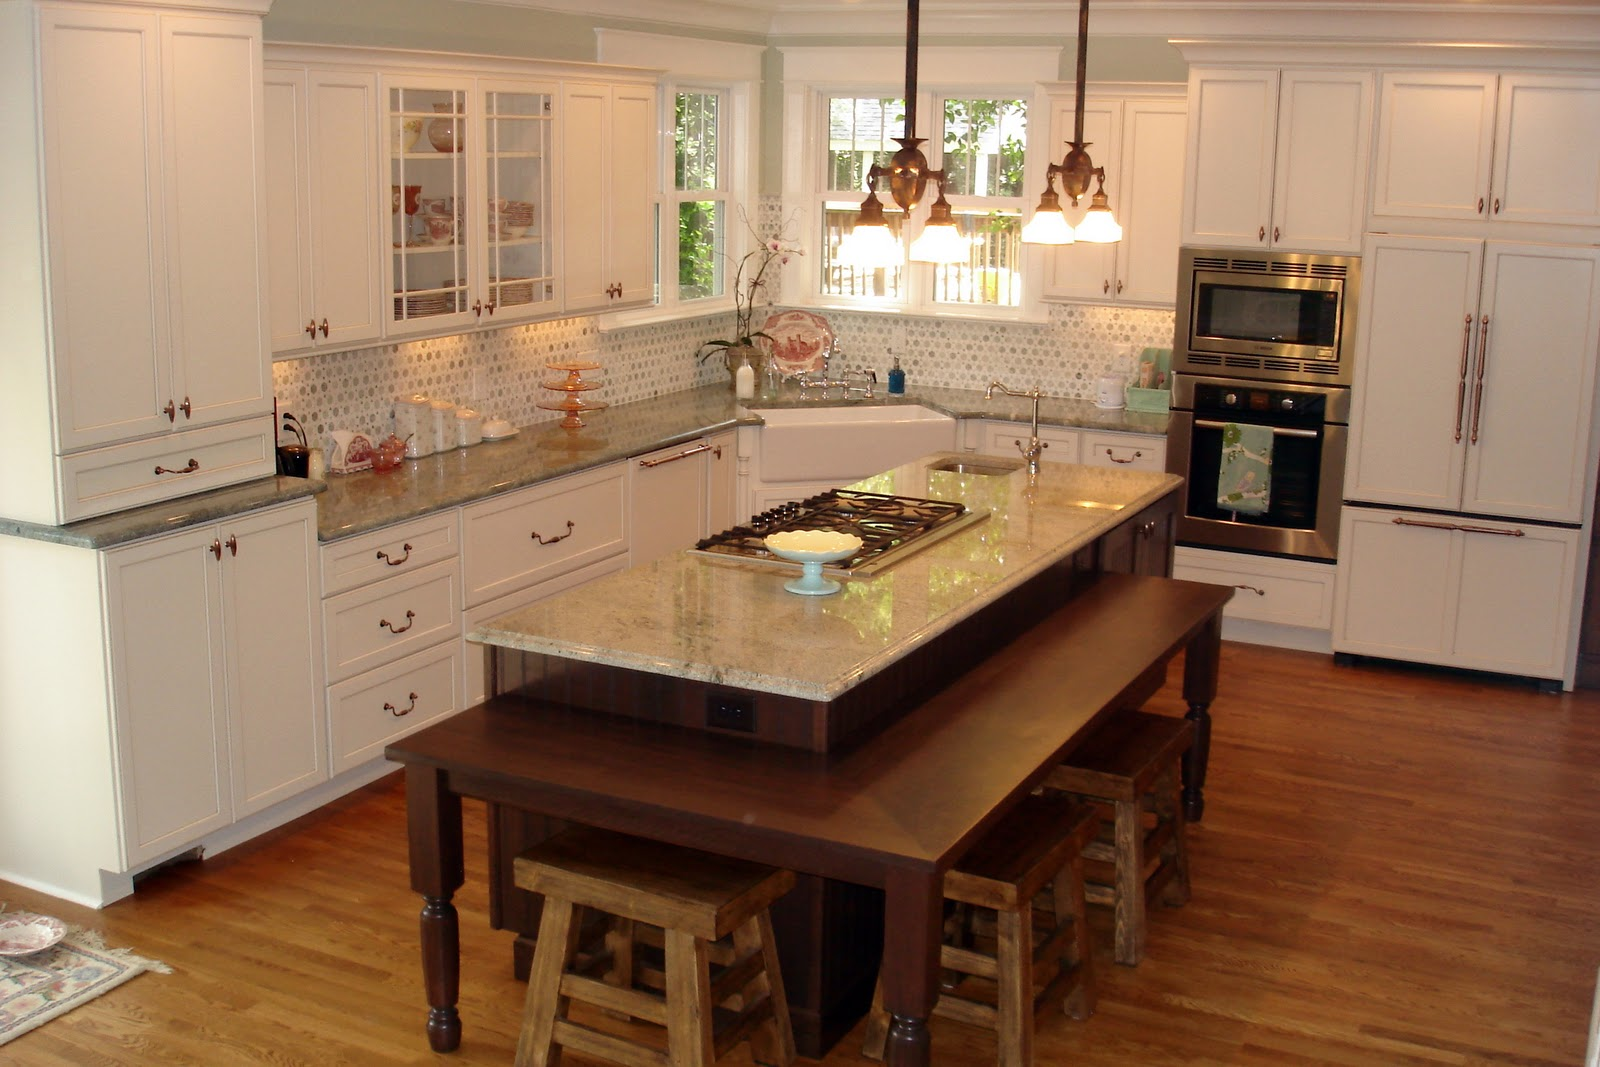 Kitchen cabinets nyc 24 7 kitchen remodeling service in - Kitchen cabinets in nyc ...